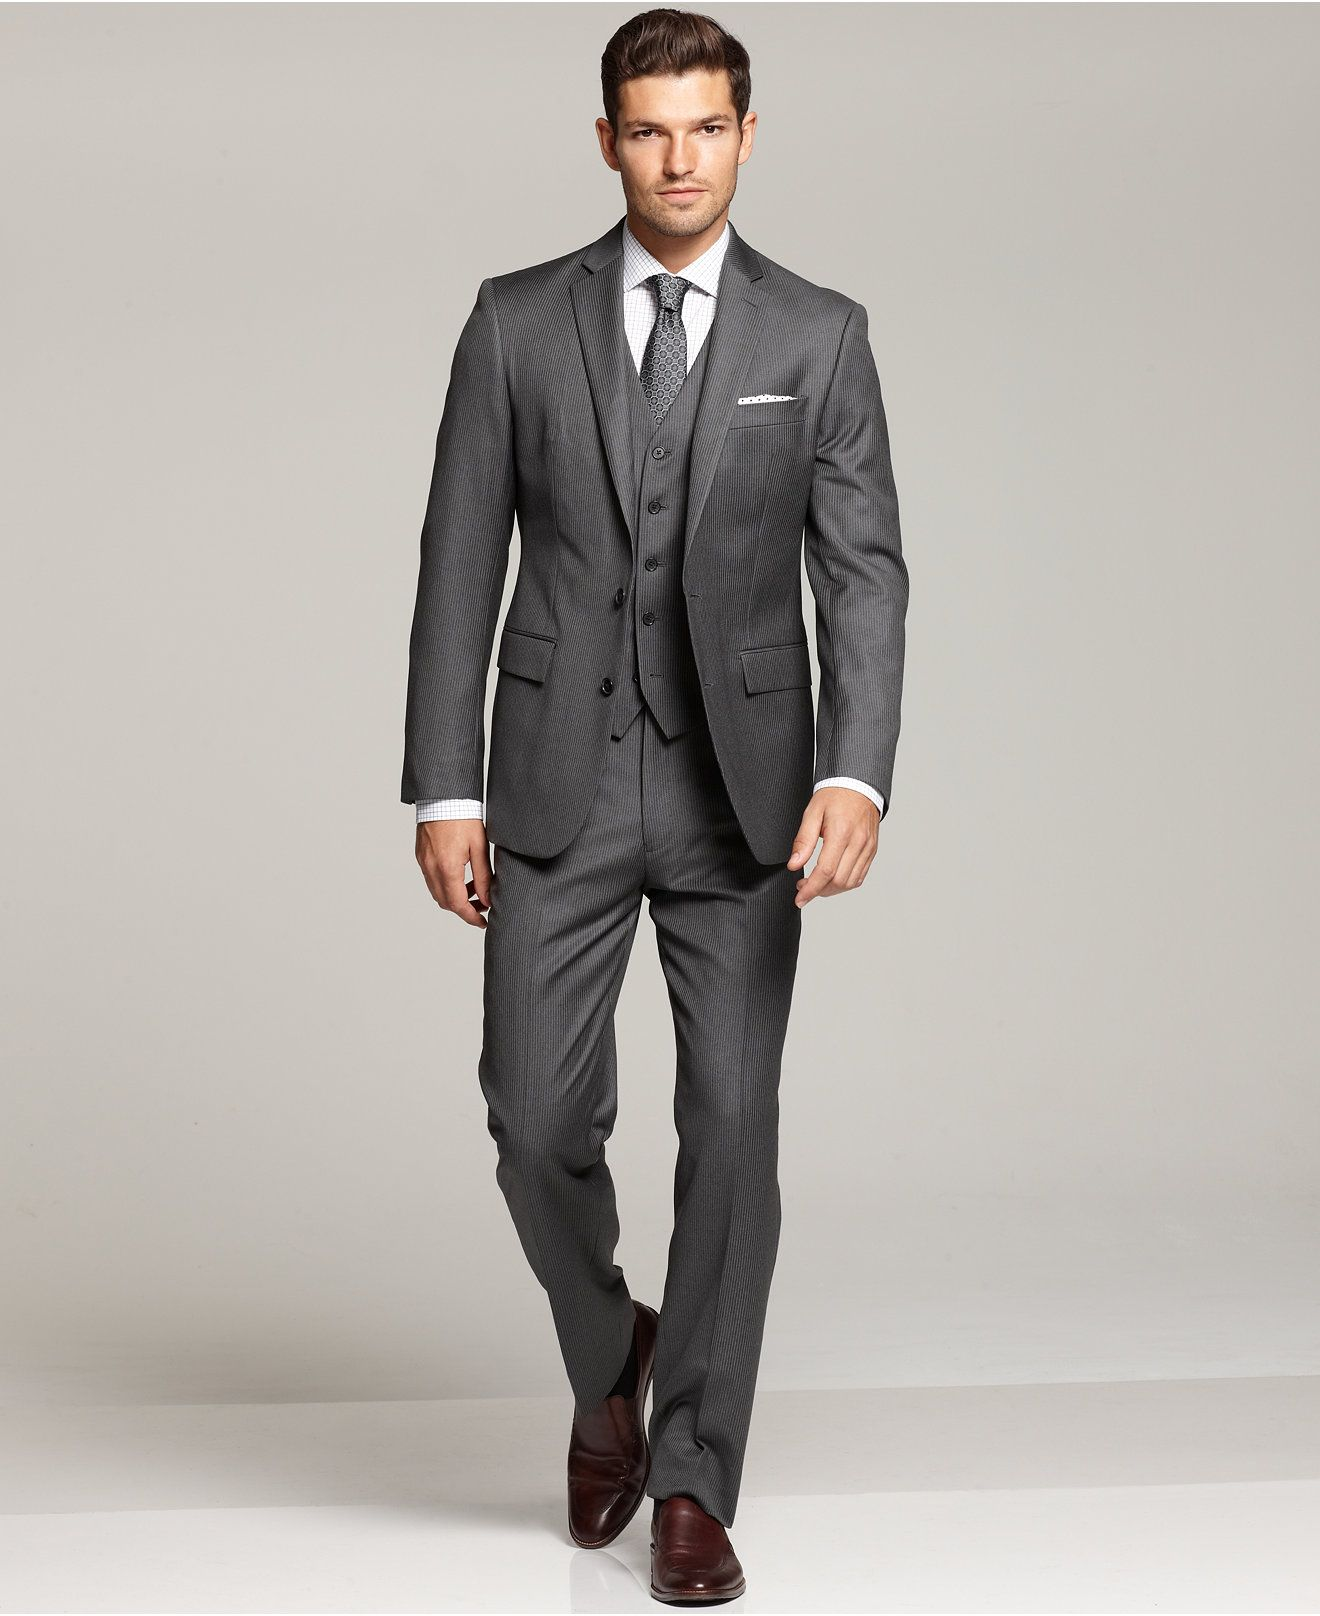 Kenneth Cole Reaction Grey Stripe Vested Slim-Fit Suit - Shop All ...